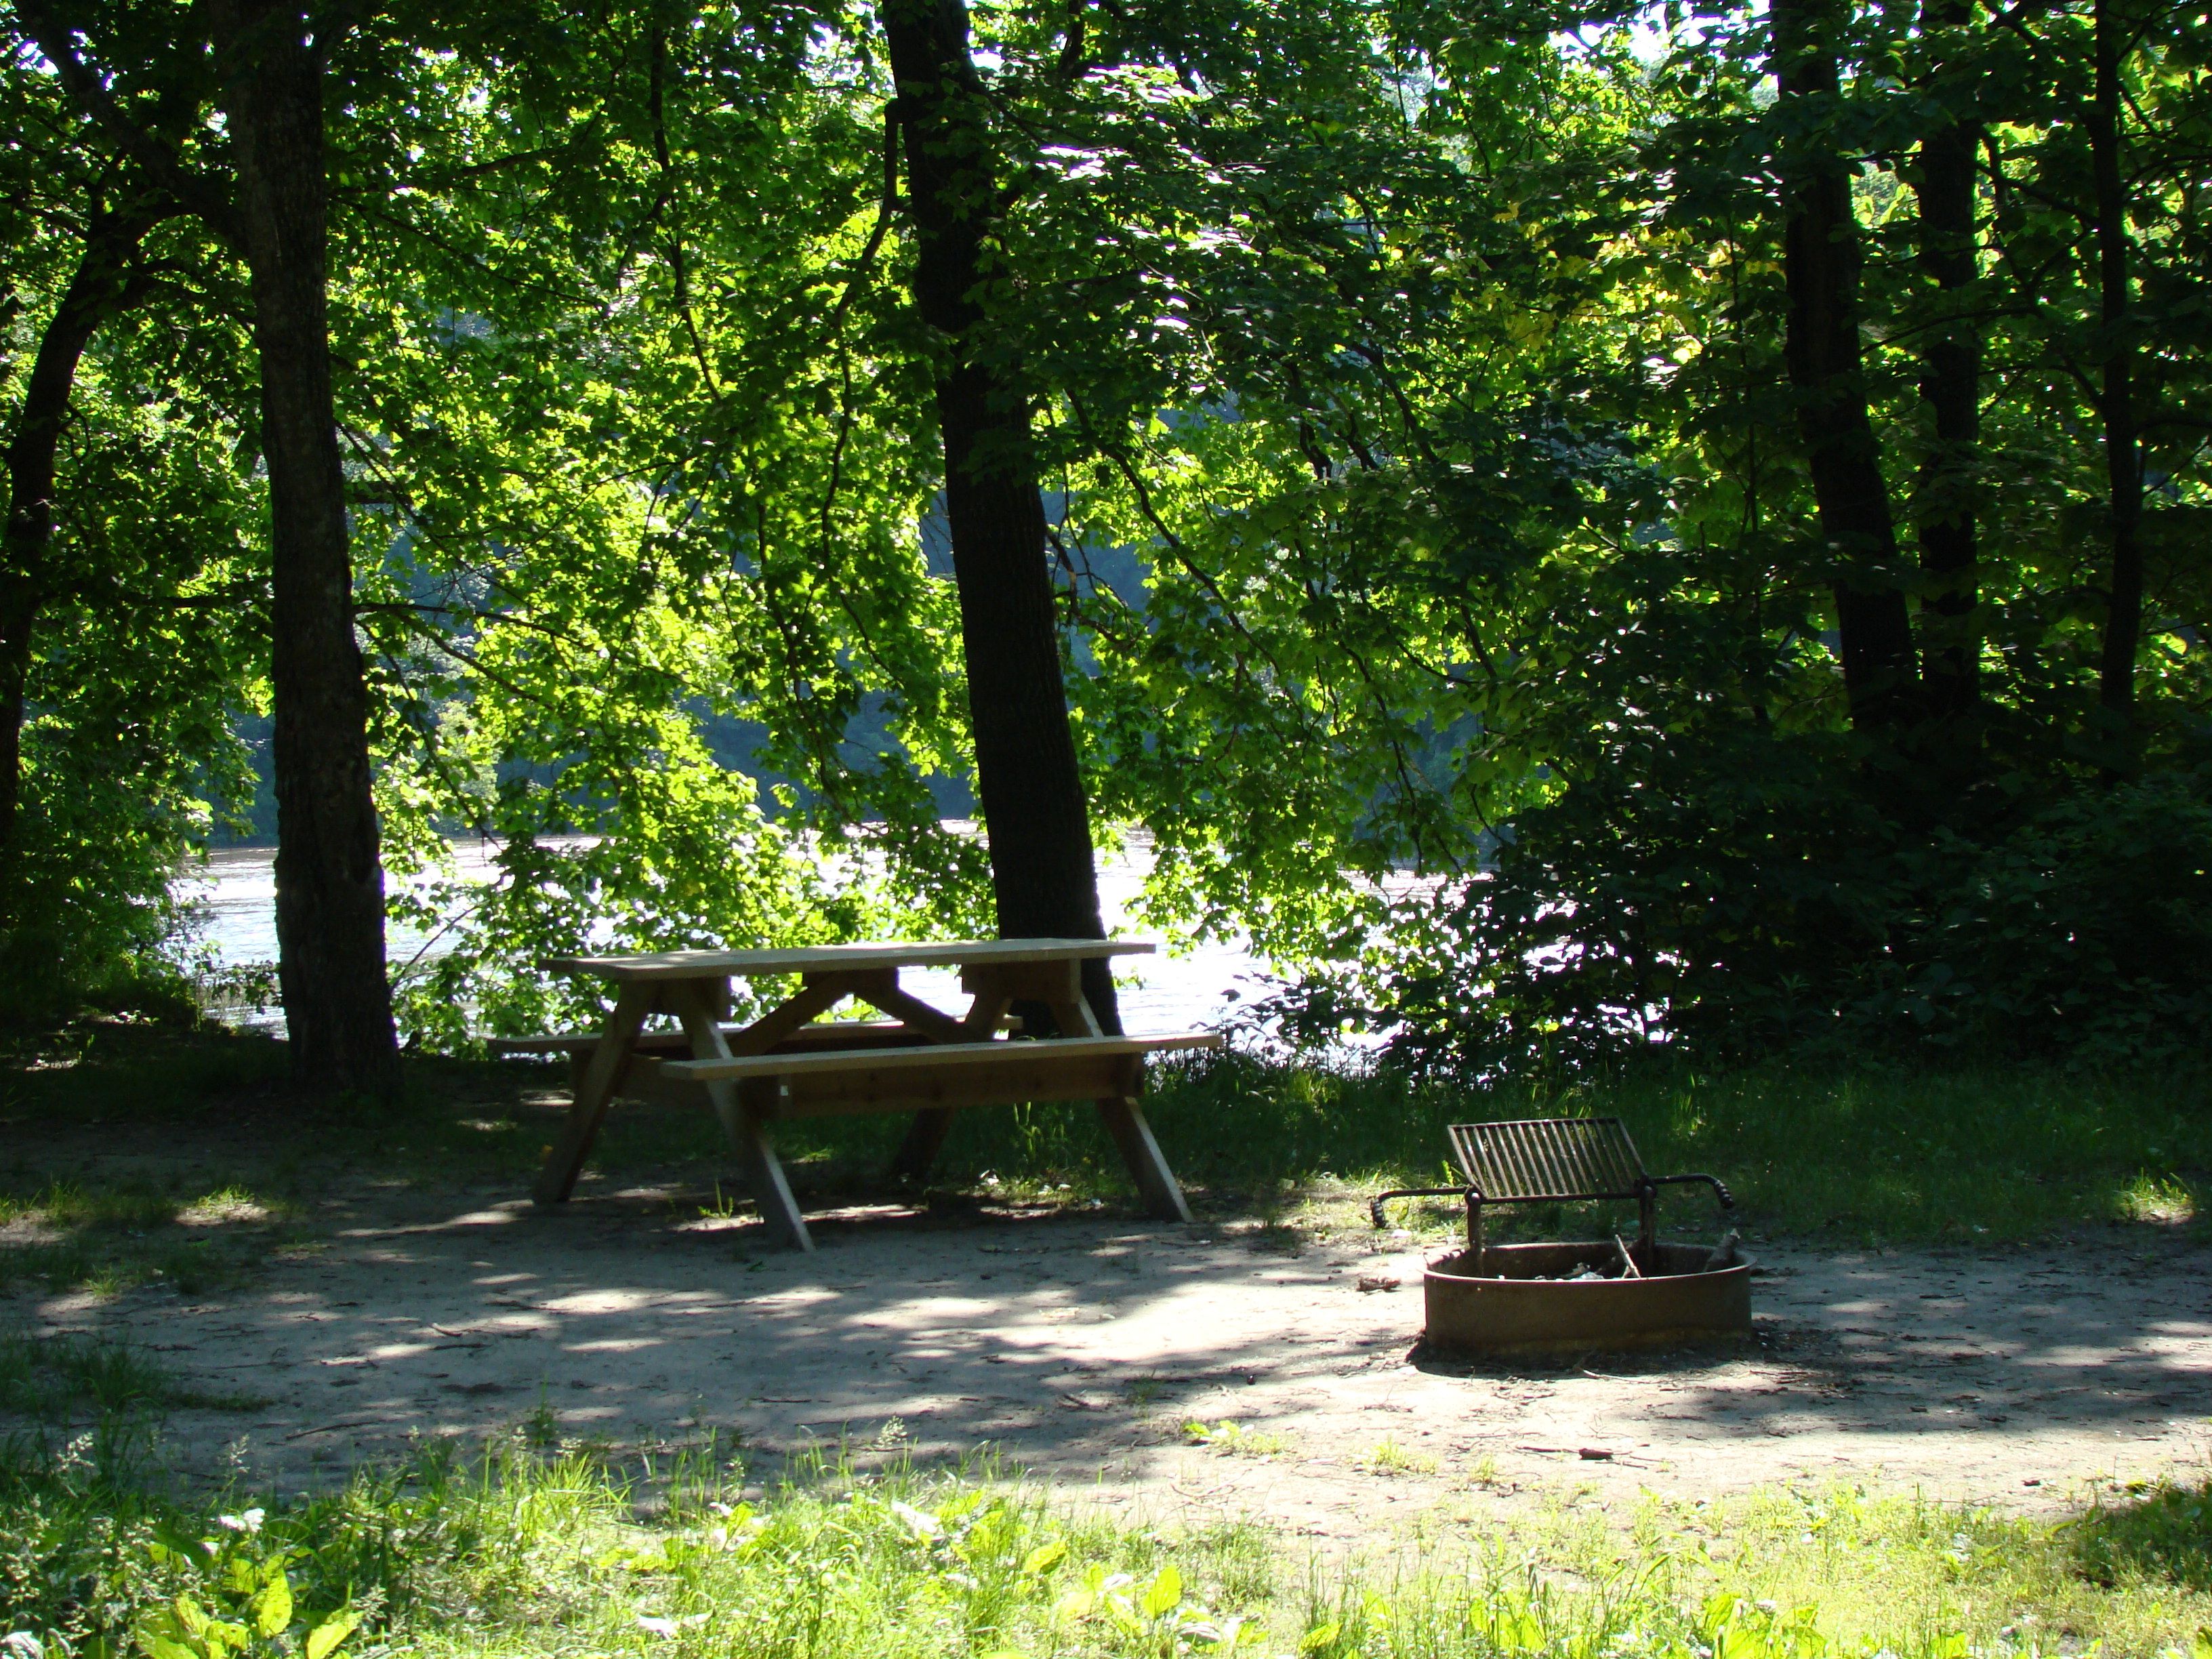 Campsite with picnic table and fire ring along the Blue Earth River at the Rapidan Park & Campground.